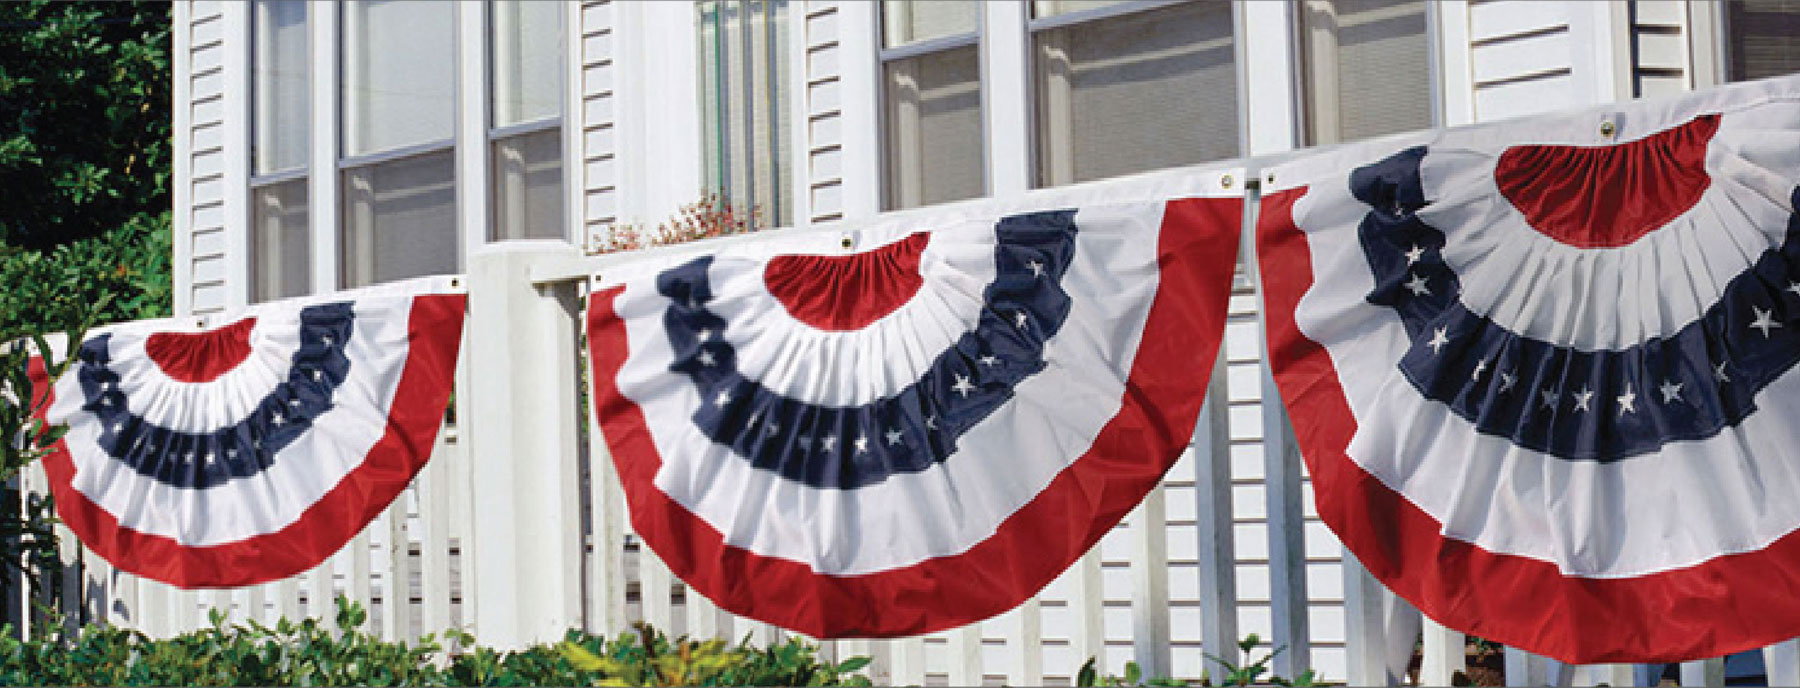 US Flag Bunting and US Pleated Fans